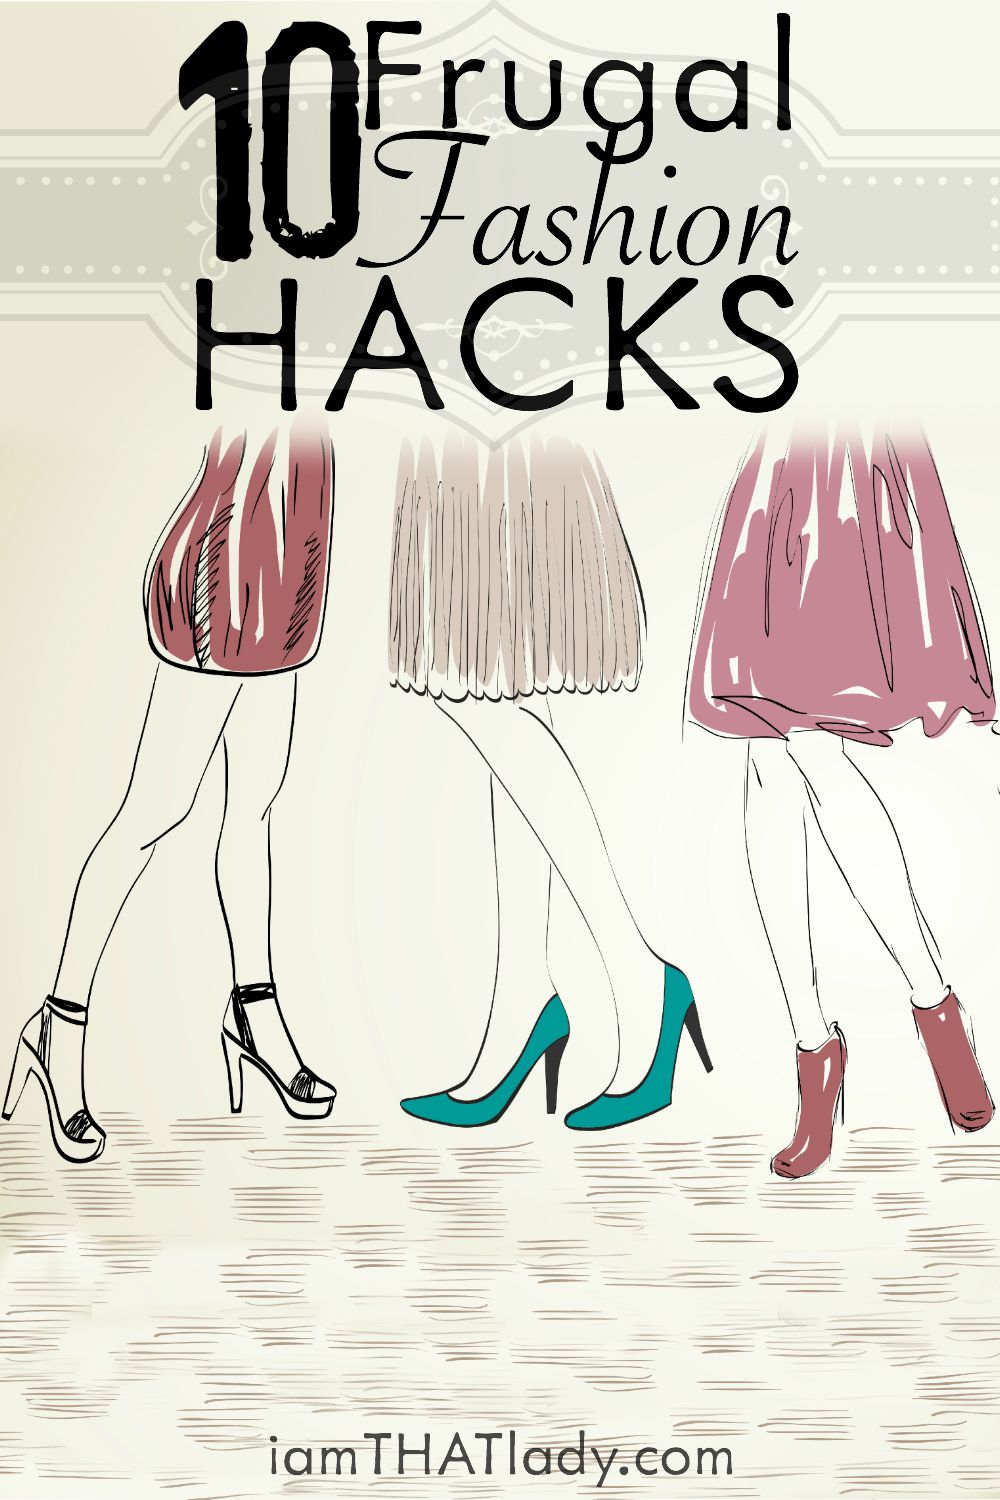 You don't have to spend a lot to look good! Check out these 10 Frugal Fashion Hacks!